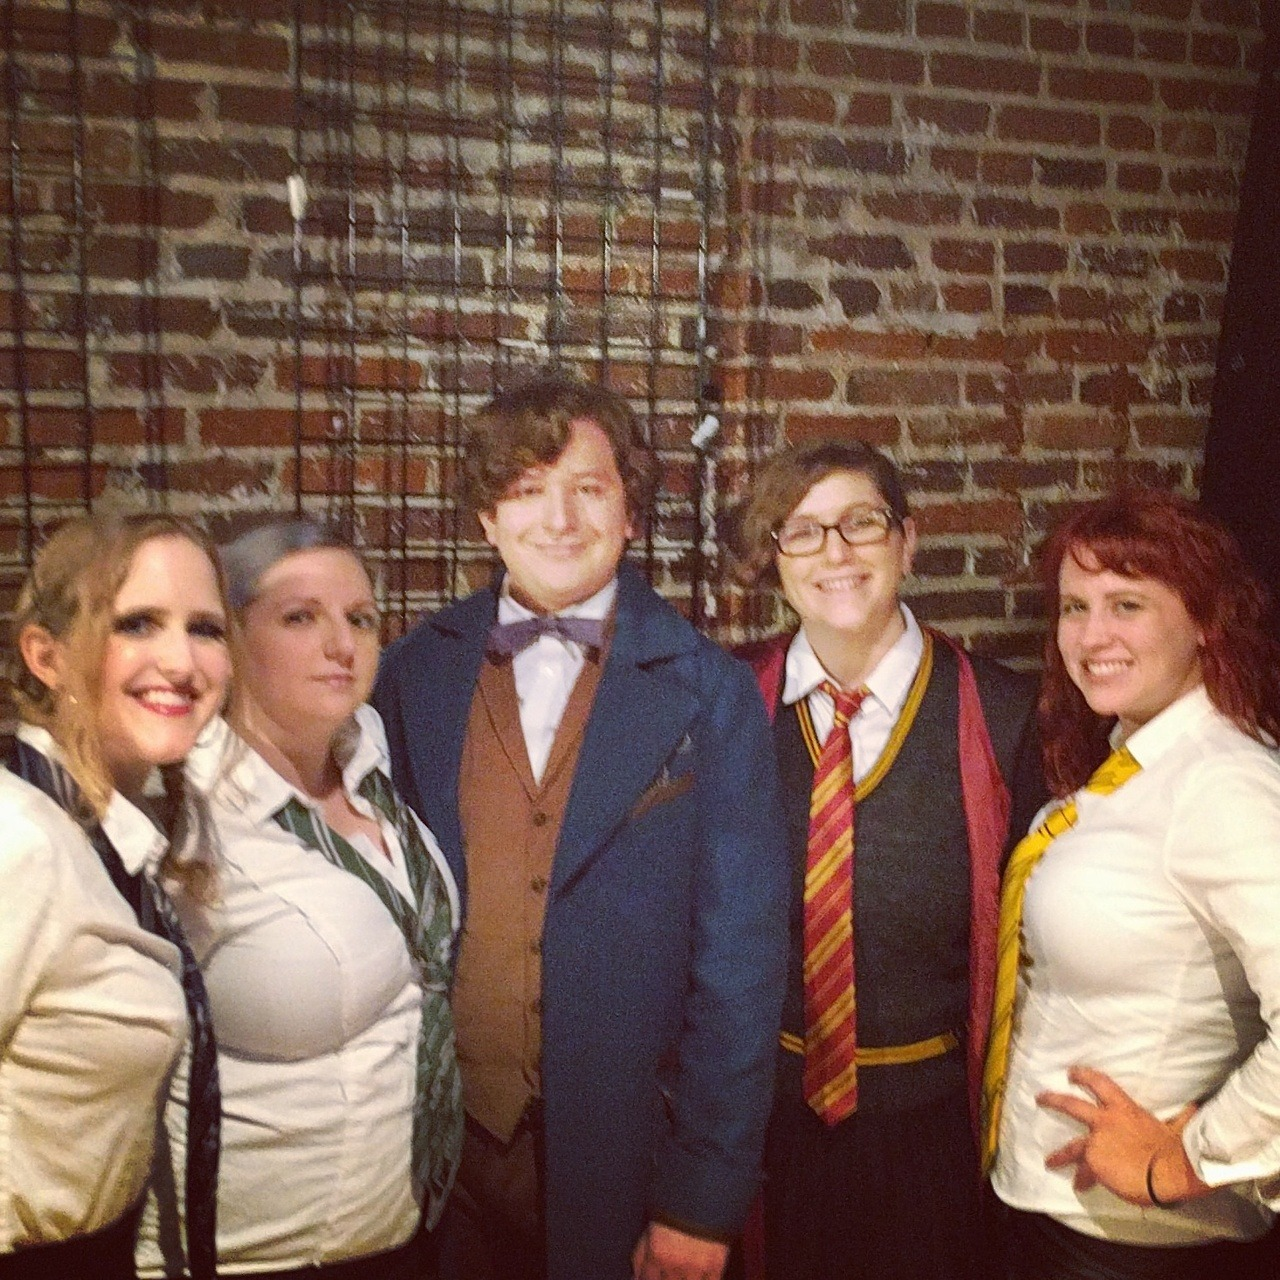 Misbehavin' Maidens and their Cabana Boy for the night, Newt Scamander